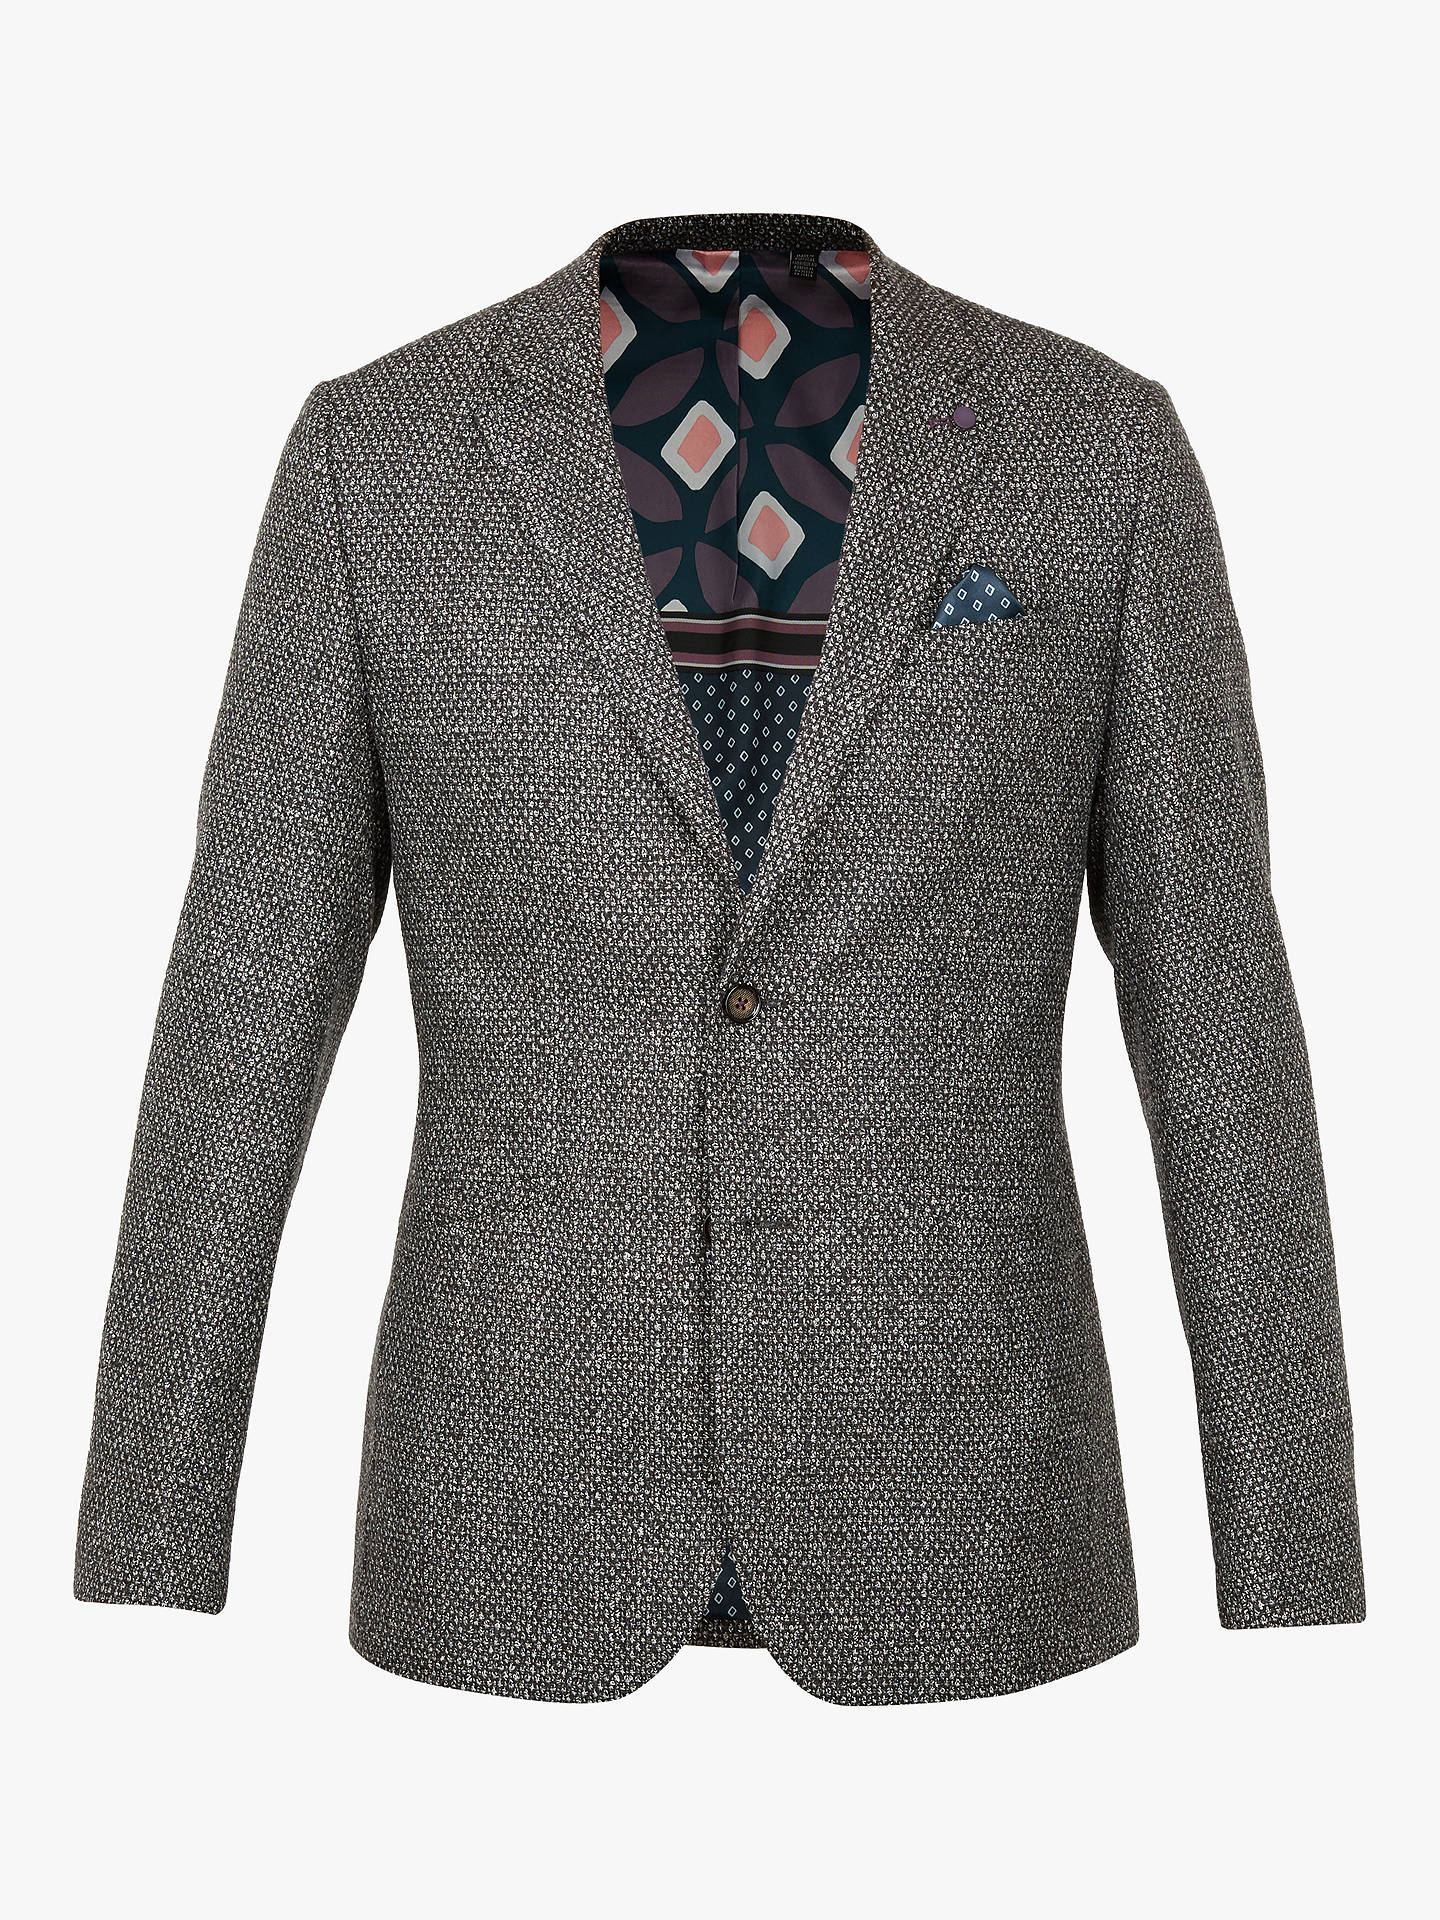 BuyTed Baker Pickl Boucle Jacket, Grey, XXL Online at johnlewis.com